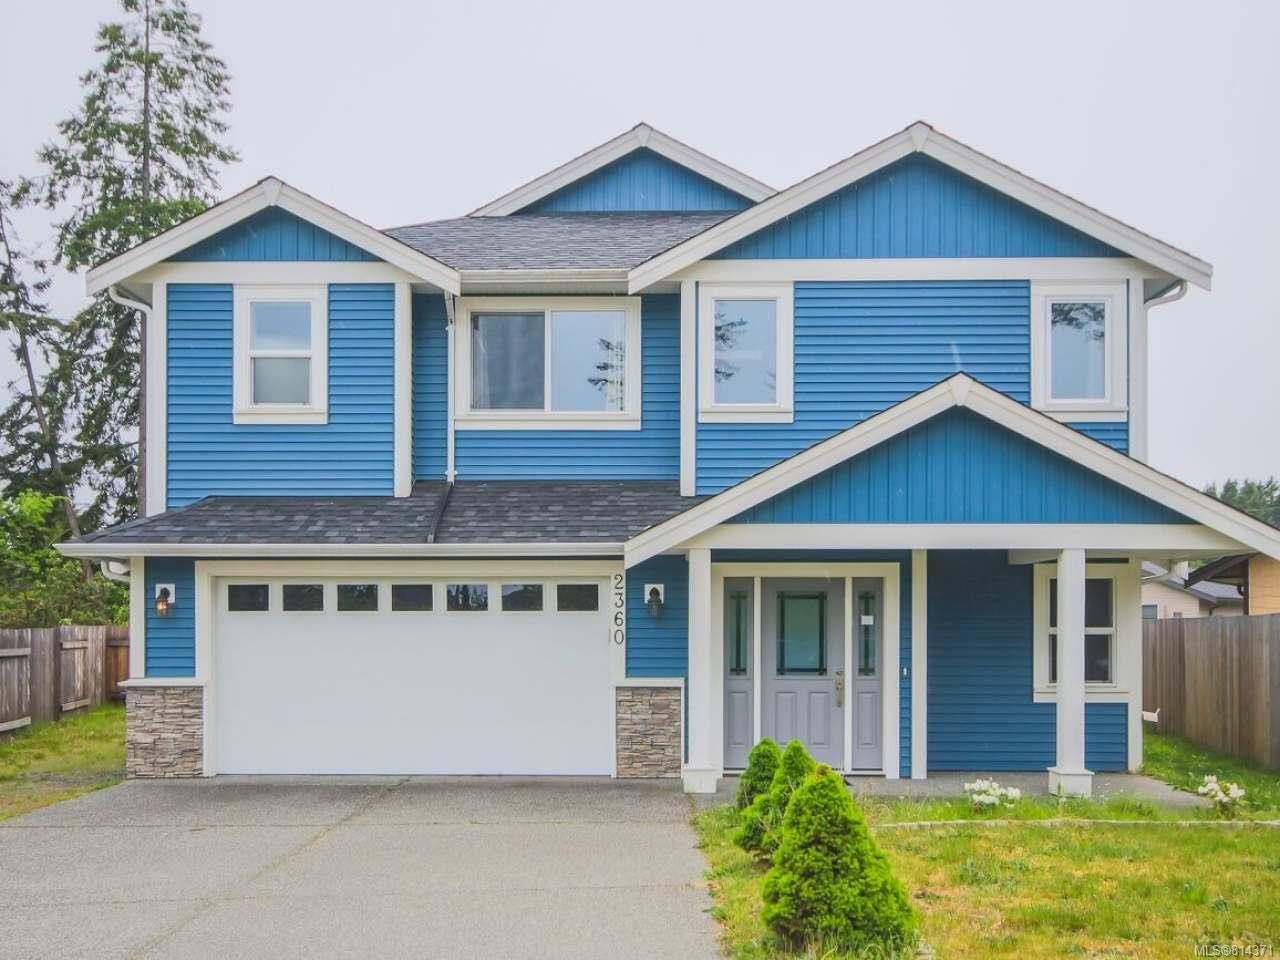 Main Photo: 2360 Mandalik Pl in NANAIMO: Na Diver Lake House for sale (Nanaimo)  : MLS®# 814371